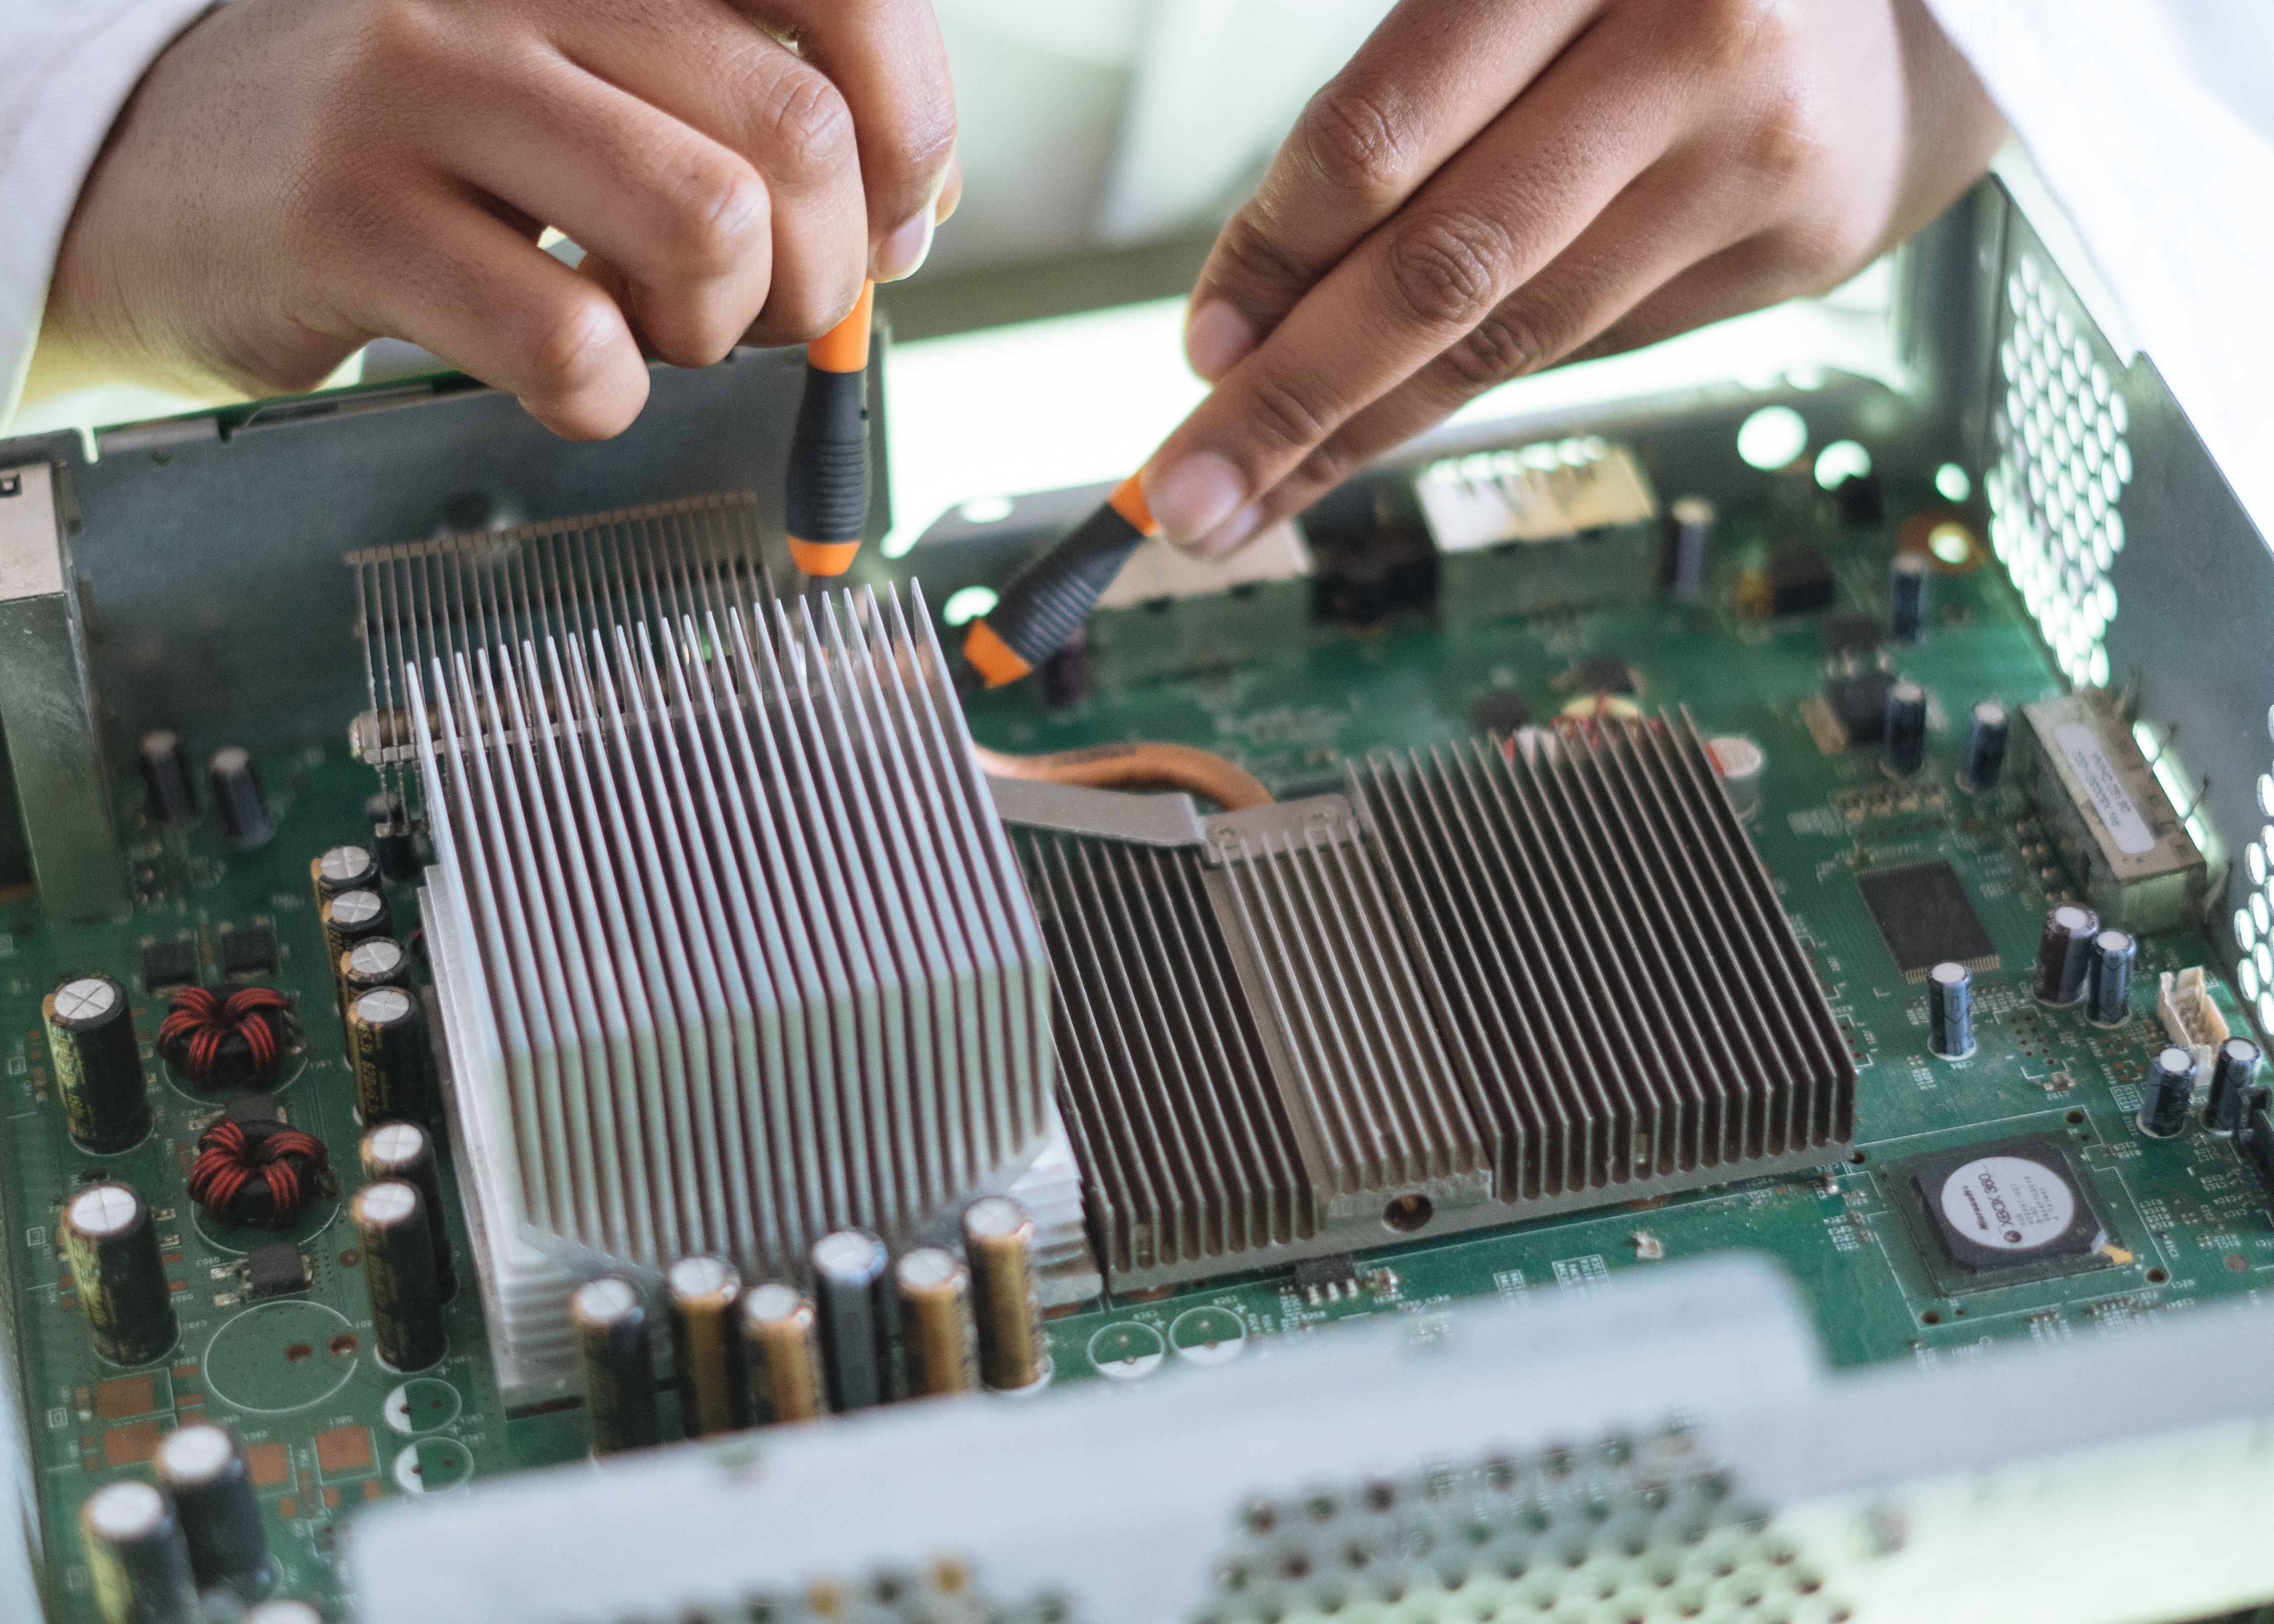 Electrical/Electronics, Manufacturing, Information Technology